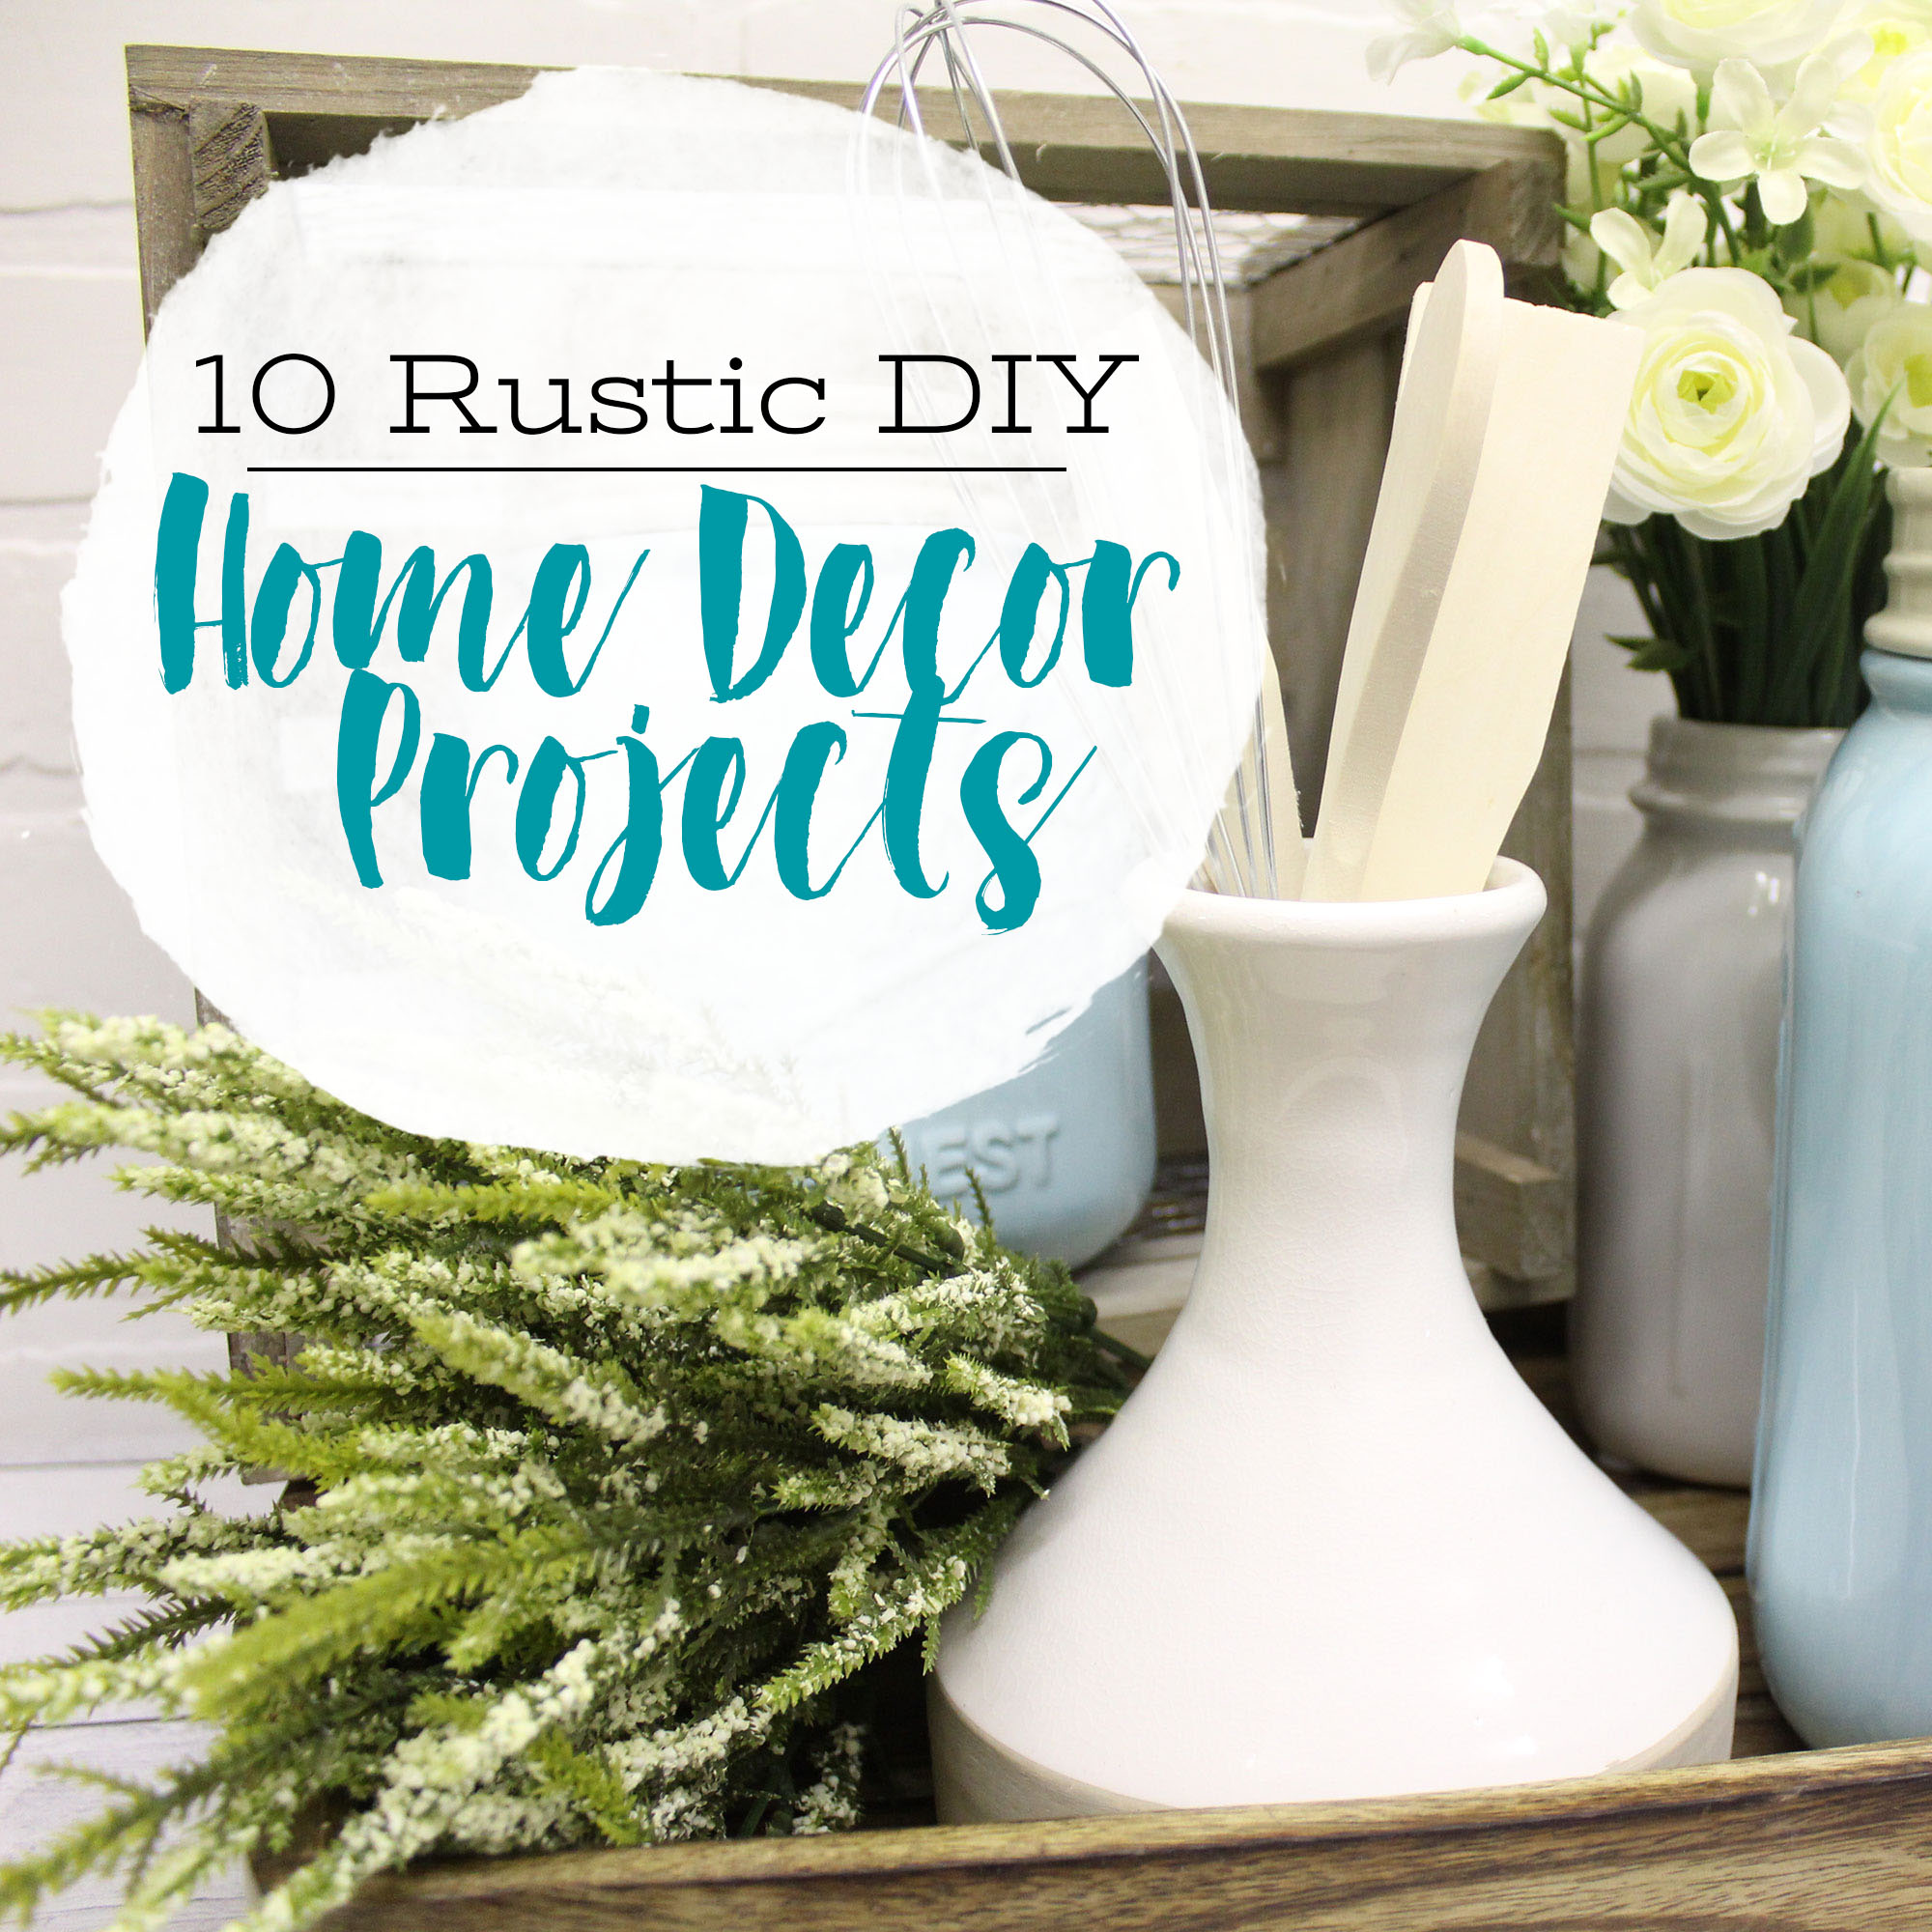 31 Rustic Diy Home Decor Projects: 10 Rustic DIY Home Décor Projects We Know You'll Love